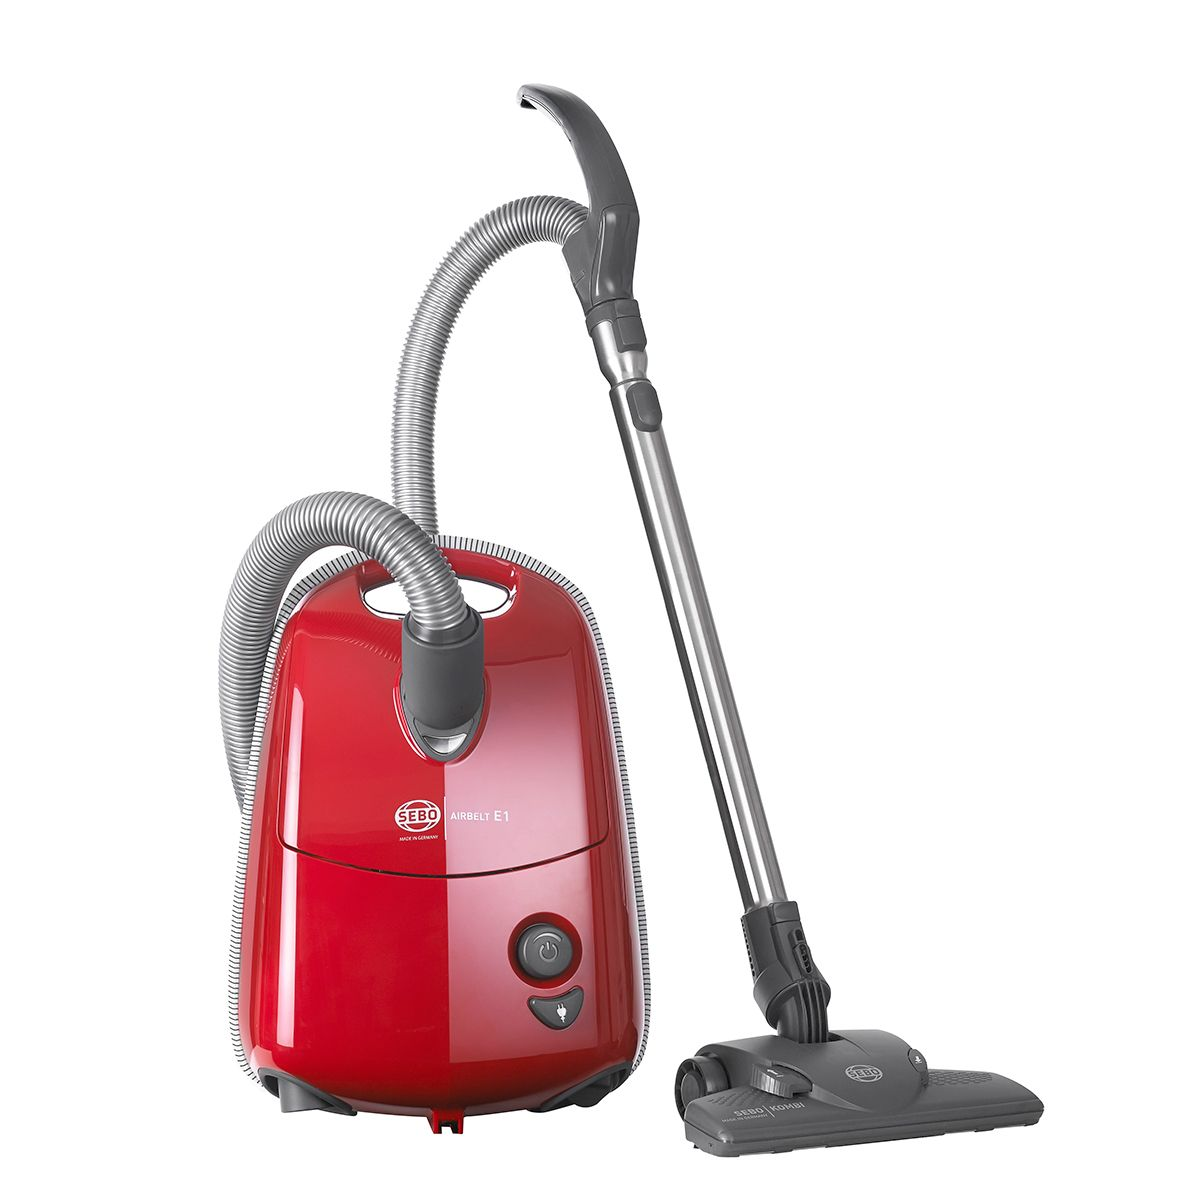 Buy a Sebo Vacuum Cleaner from an